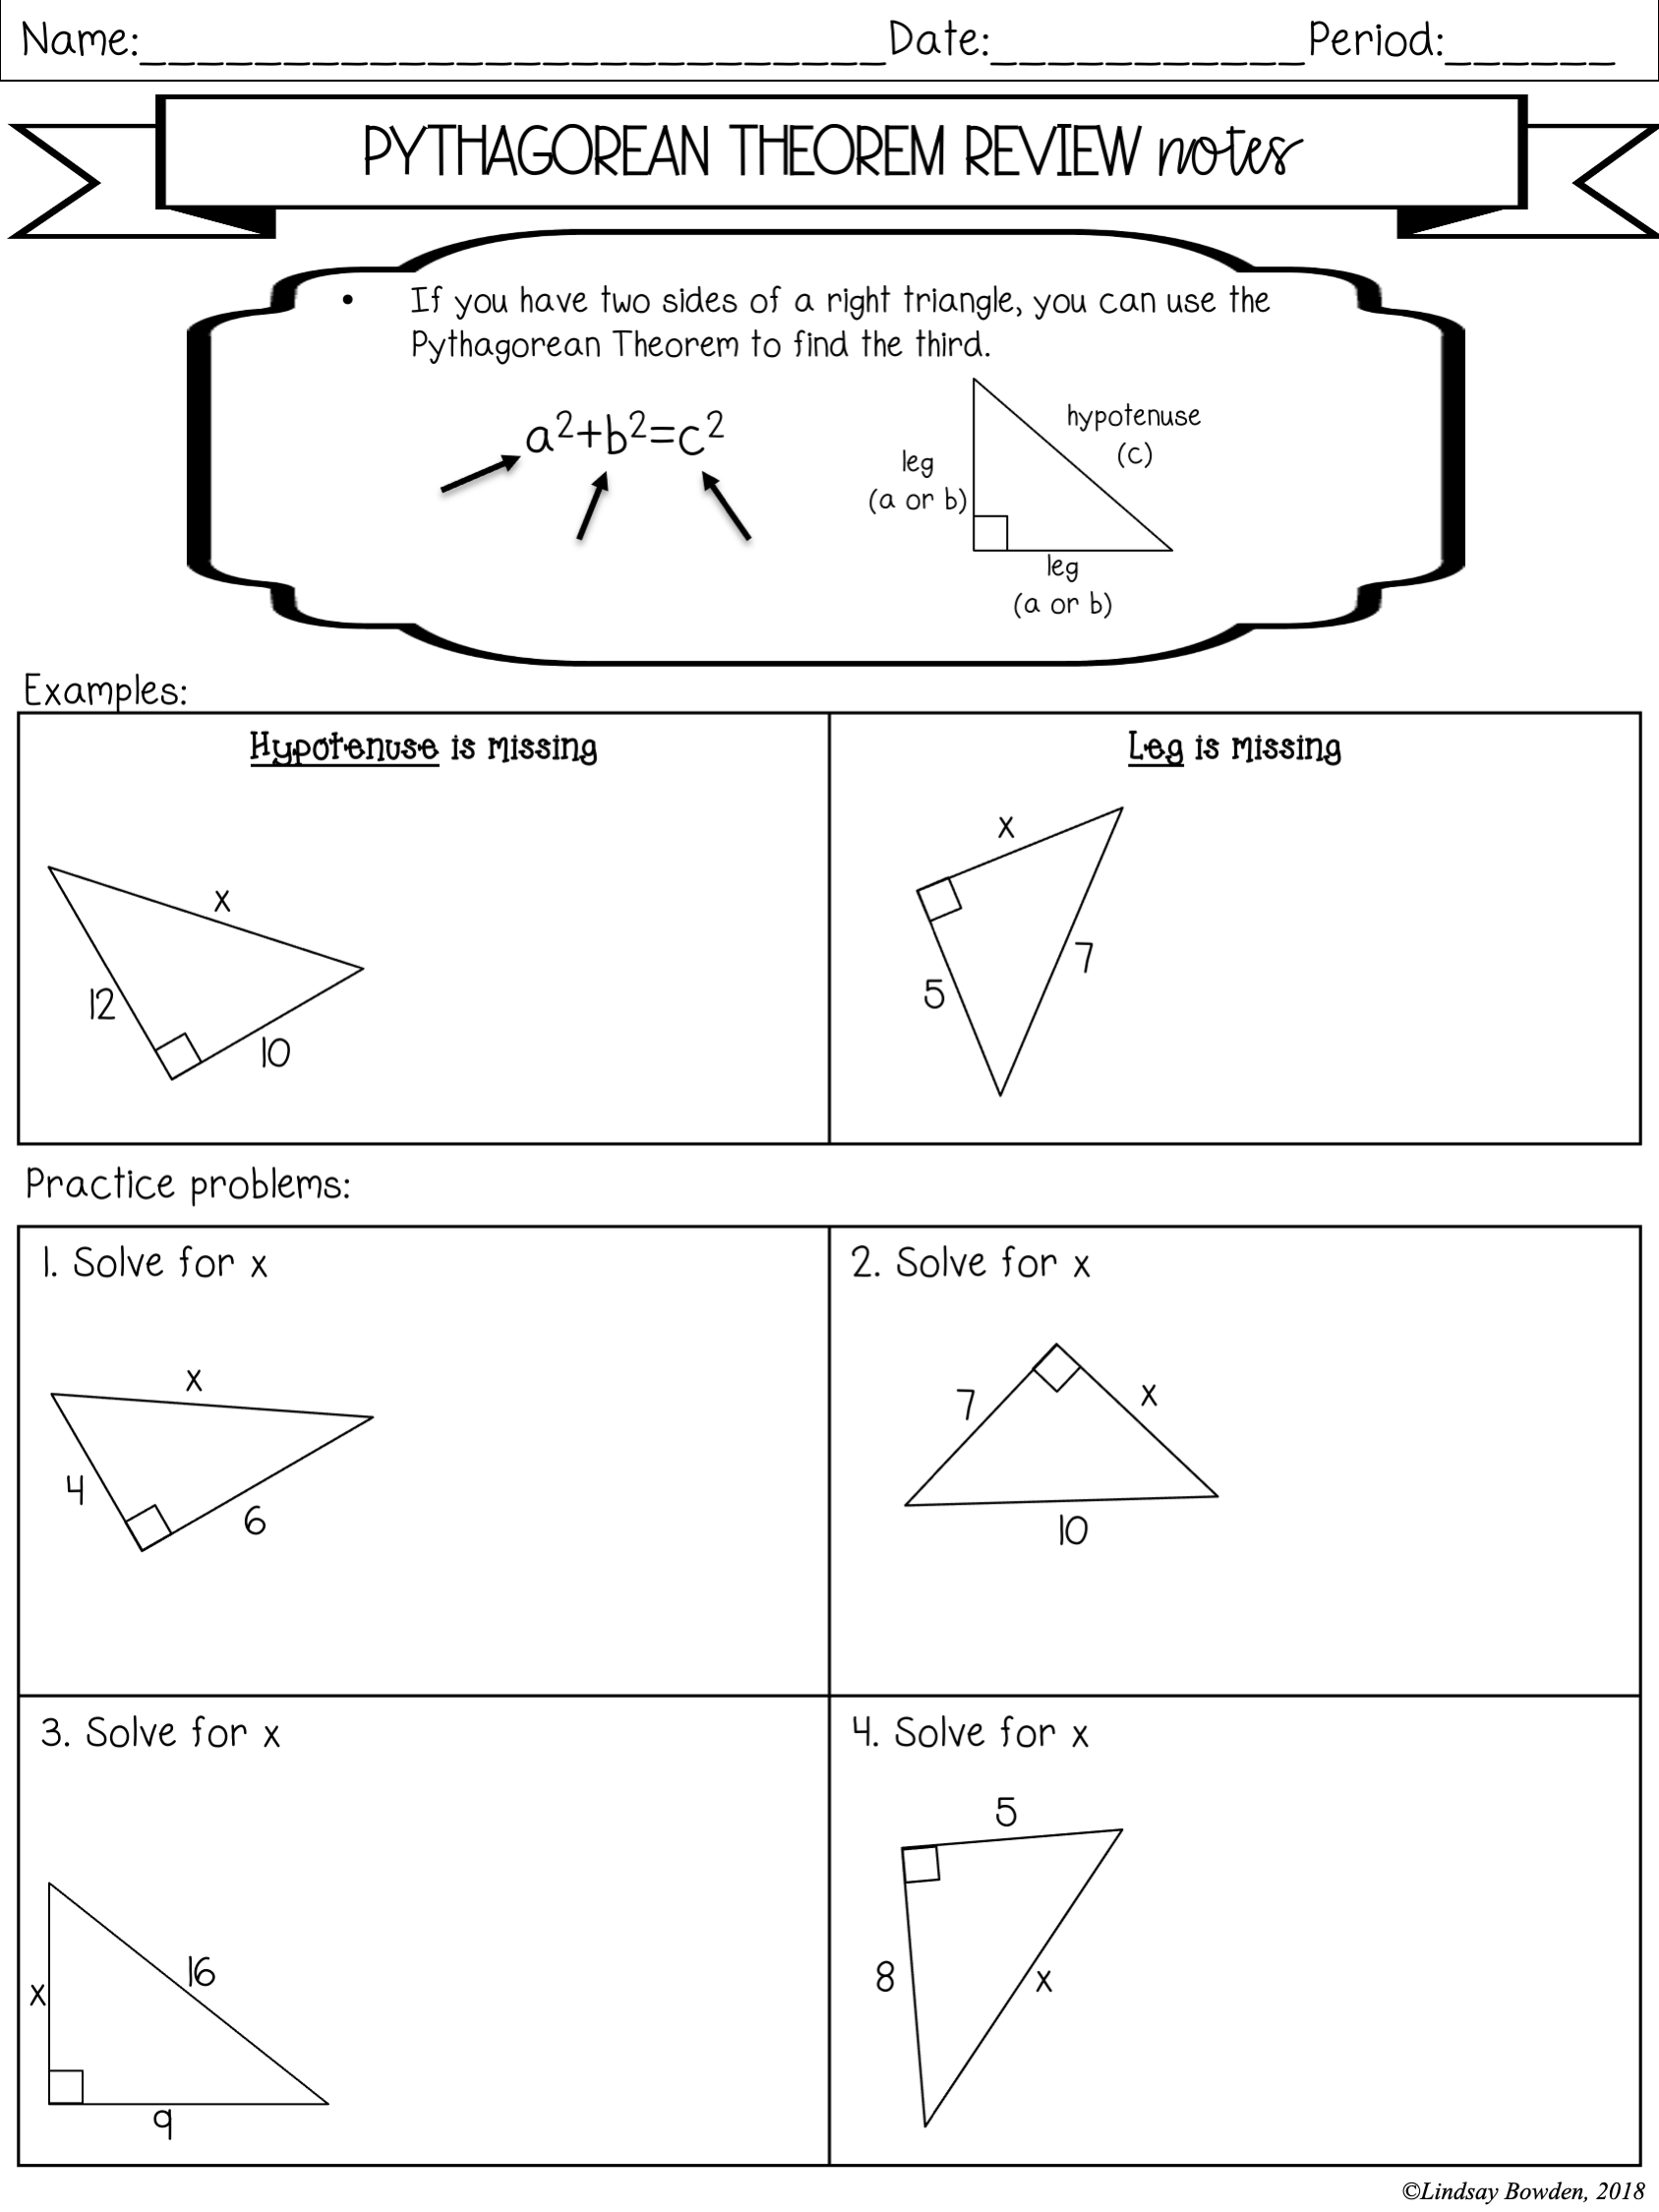 Right Triangle Trigonometry Notes and Worksheets - Lindsay Bowden For Right Triangle Trig Worksheet